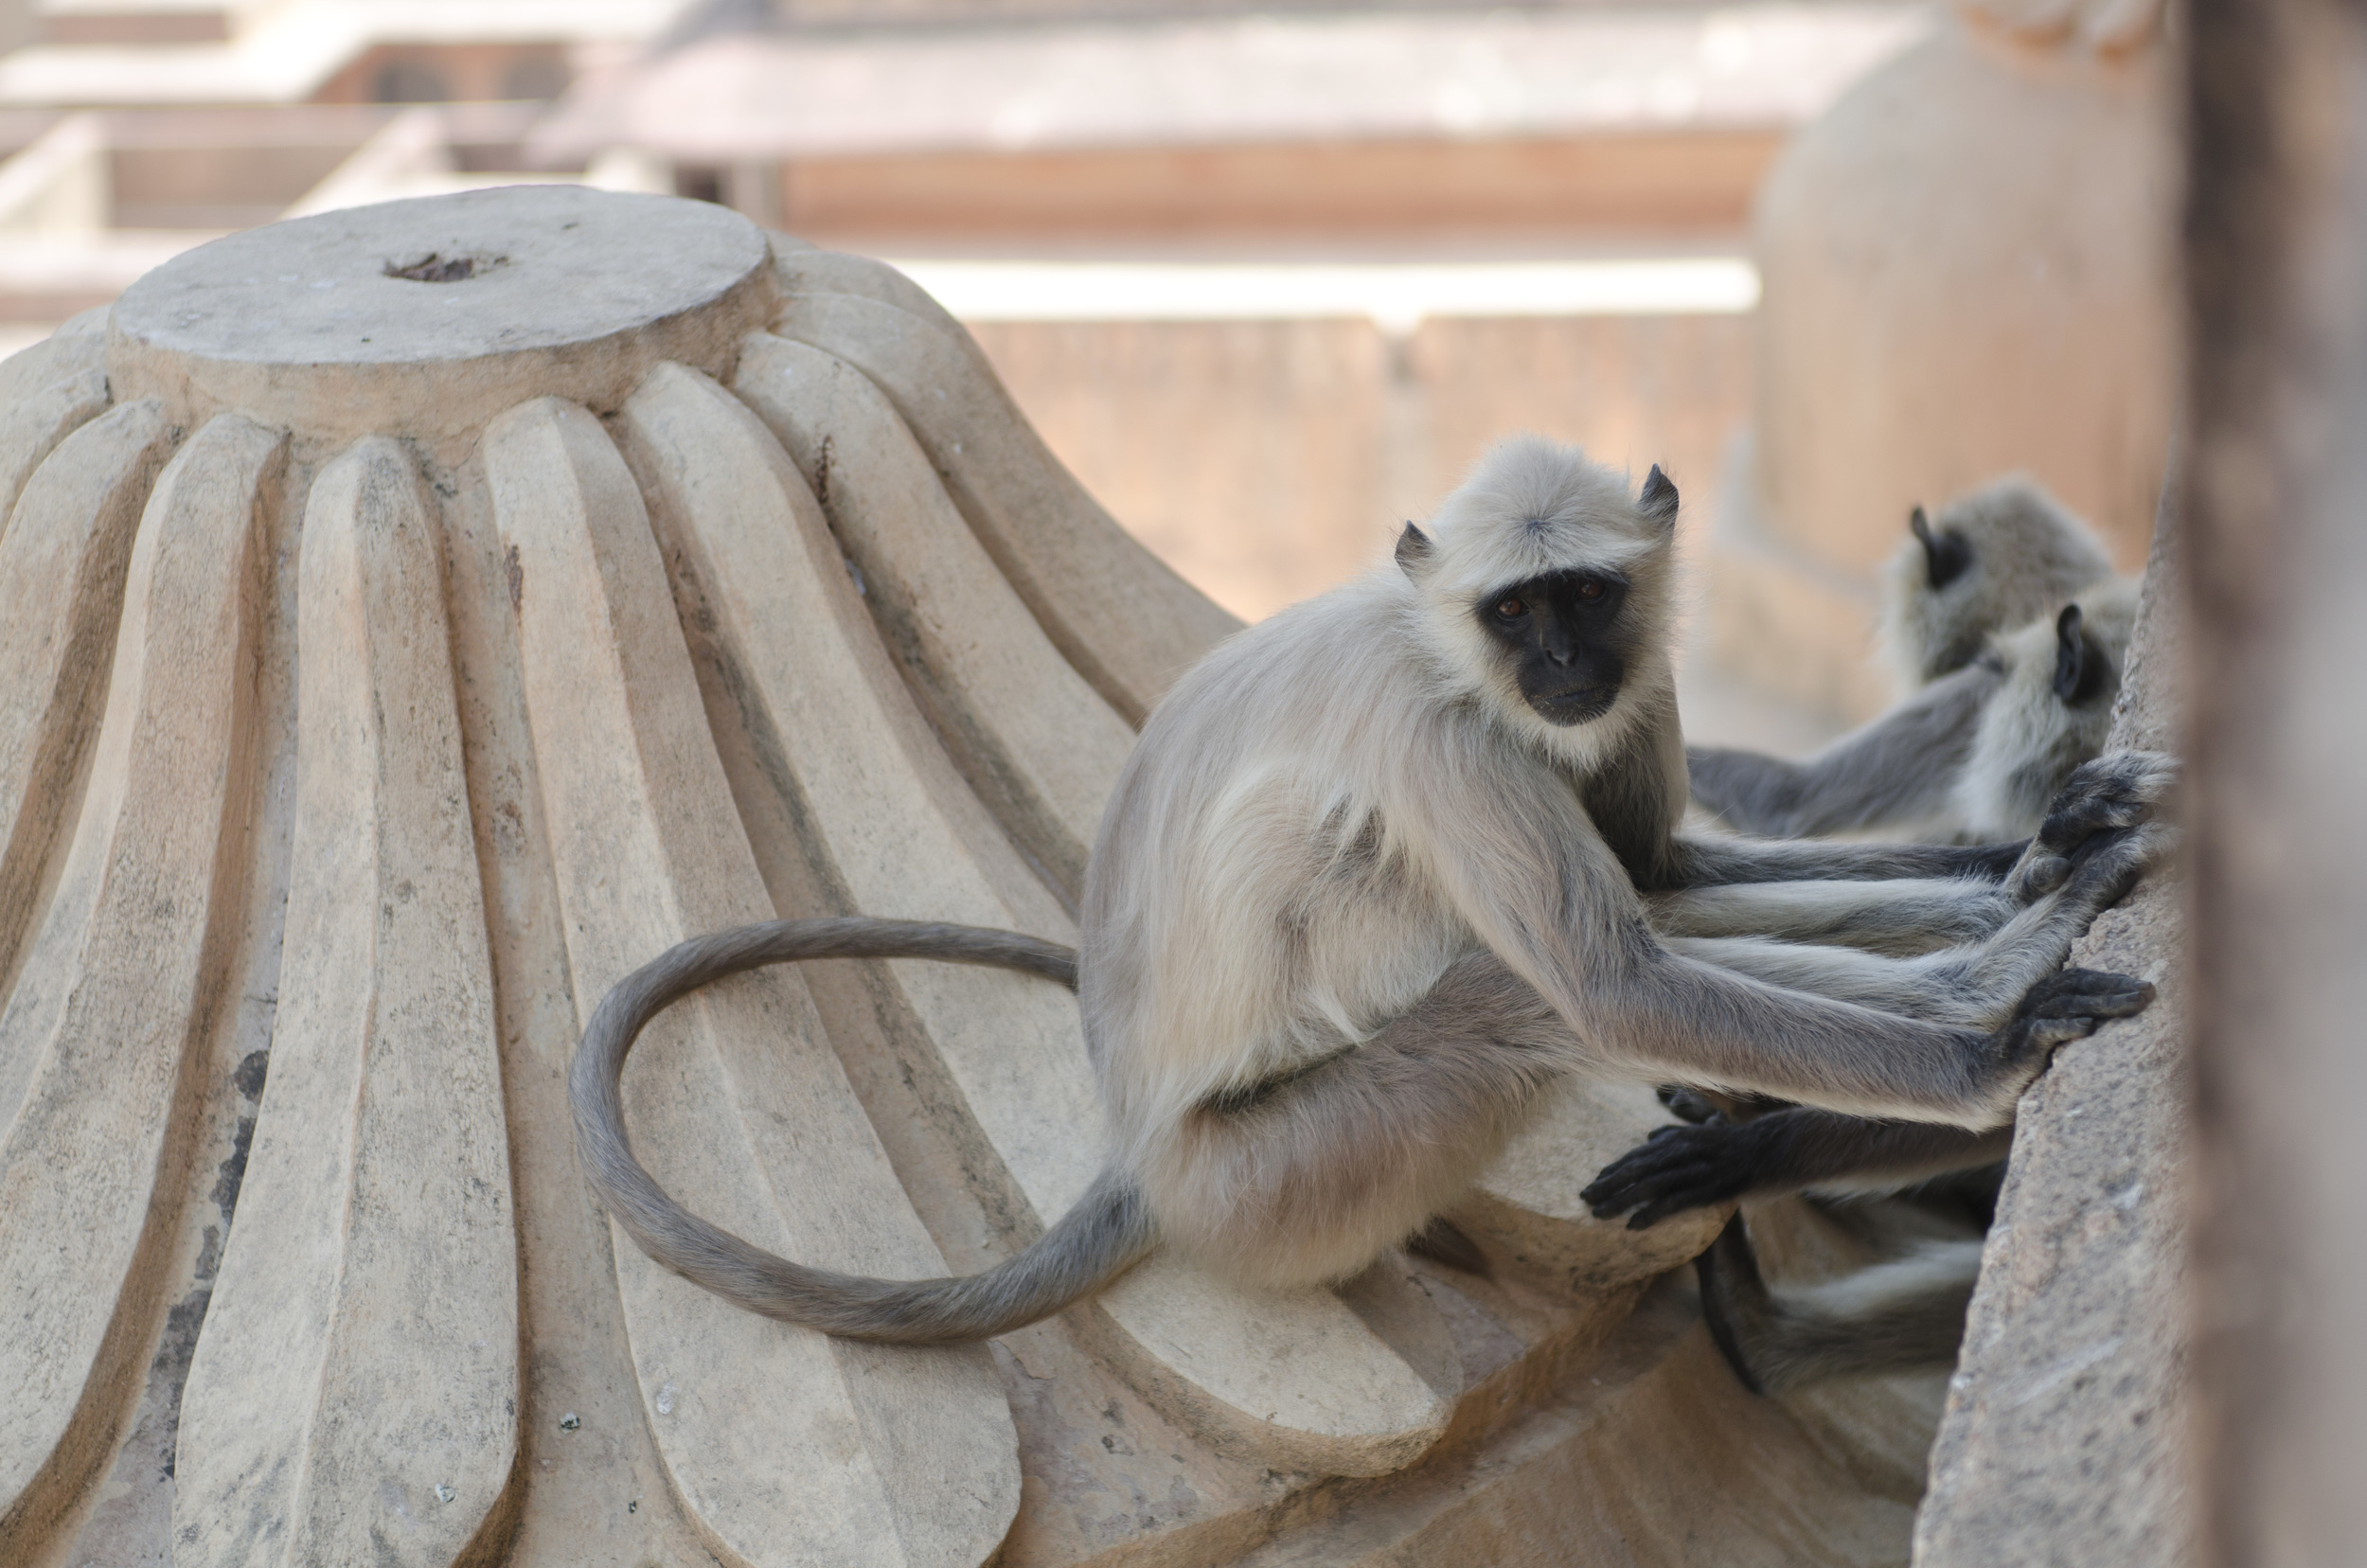 There were so many monkeys scampering around